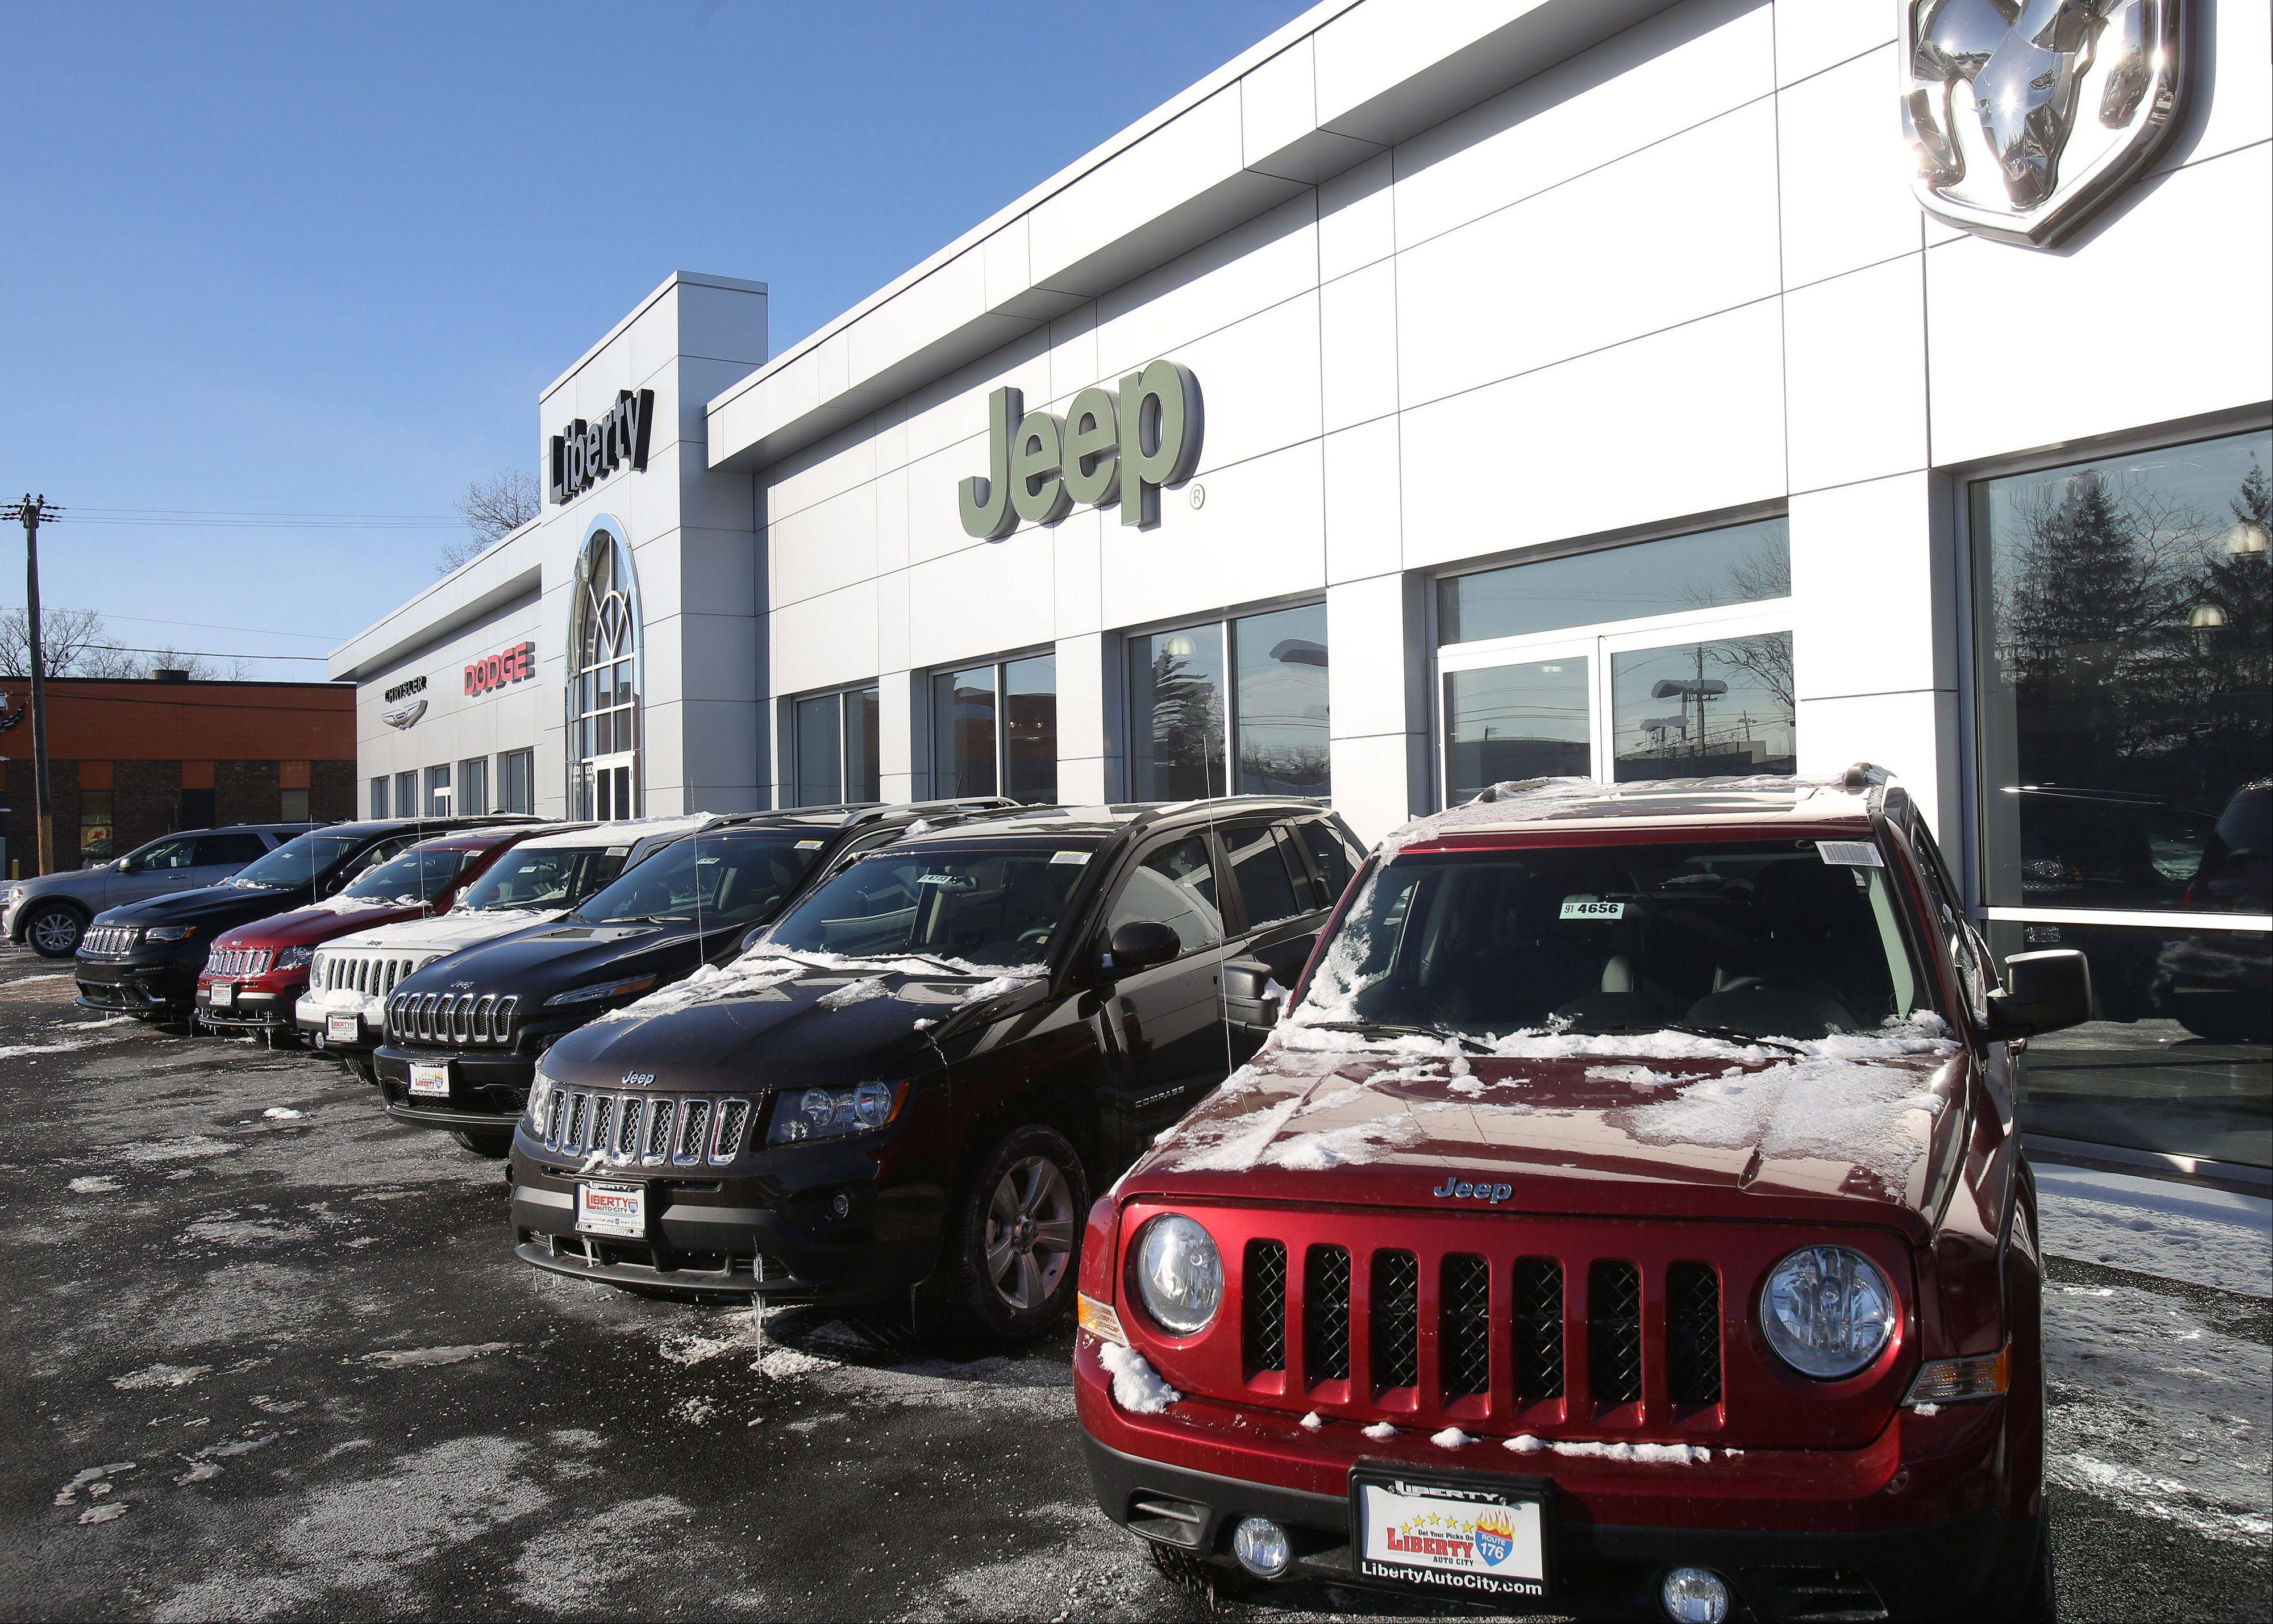 New Jeep Cherokees and Patriots await customers at Liberty Auto City in Libertyville.